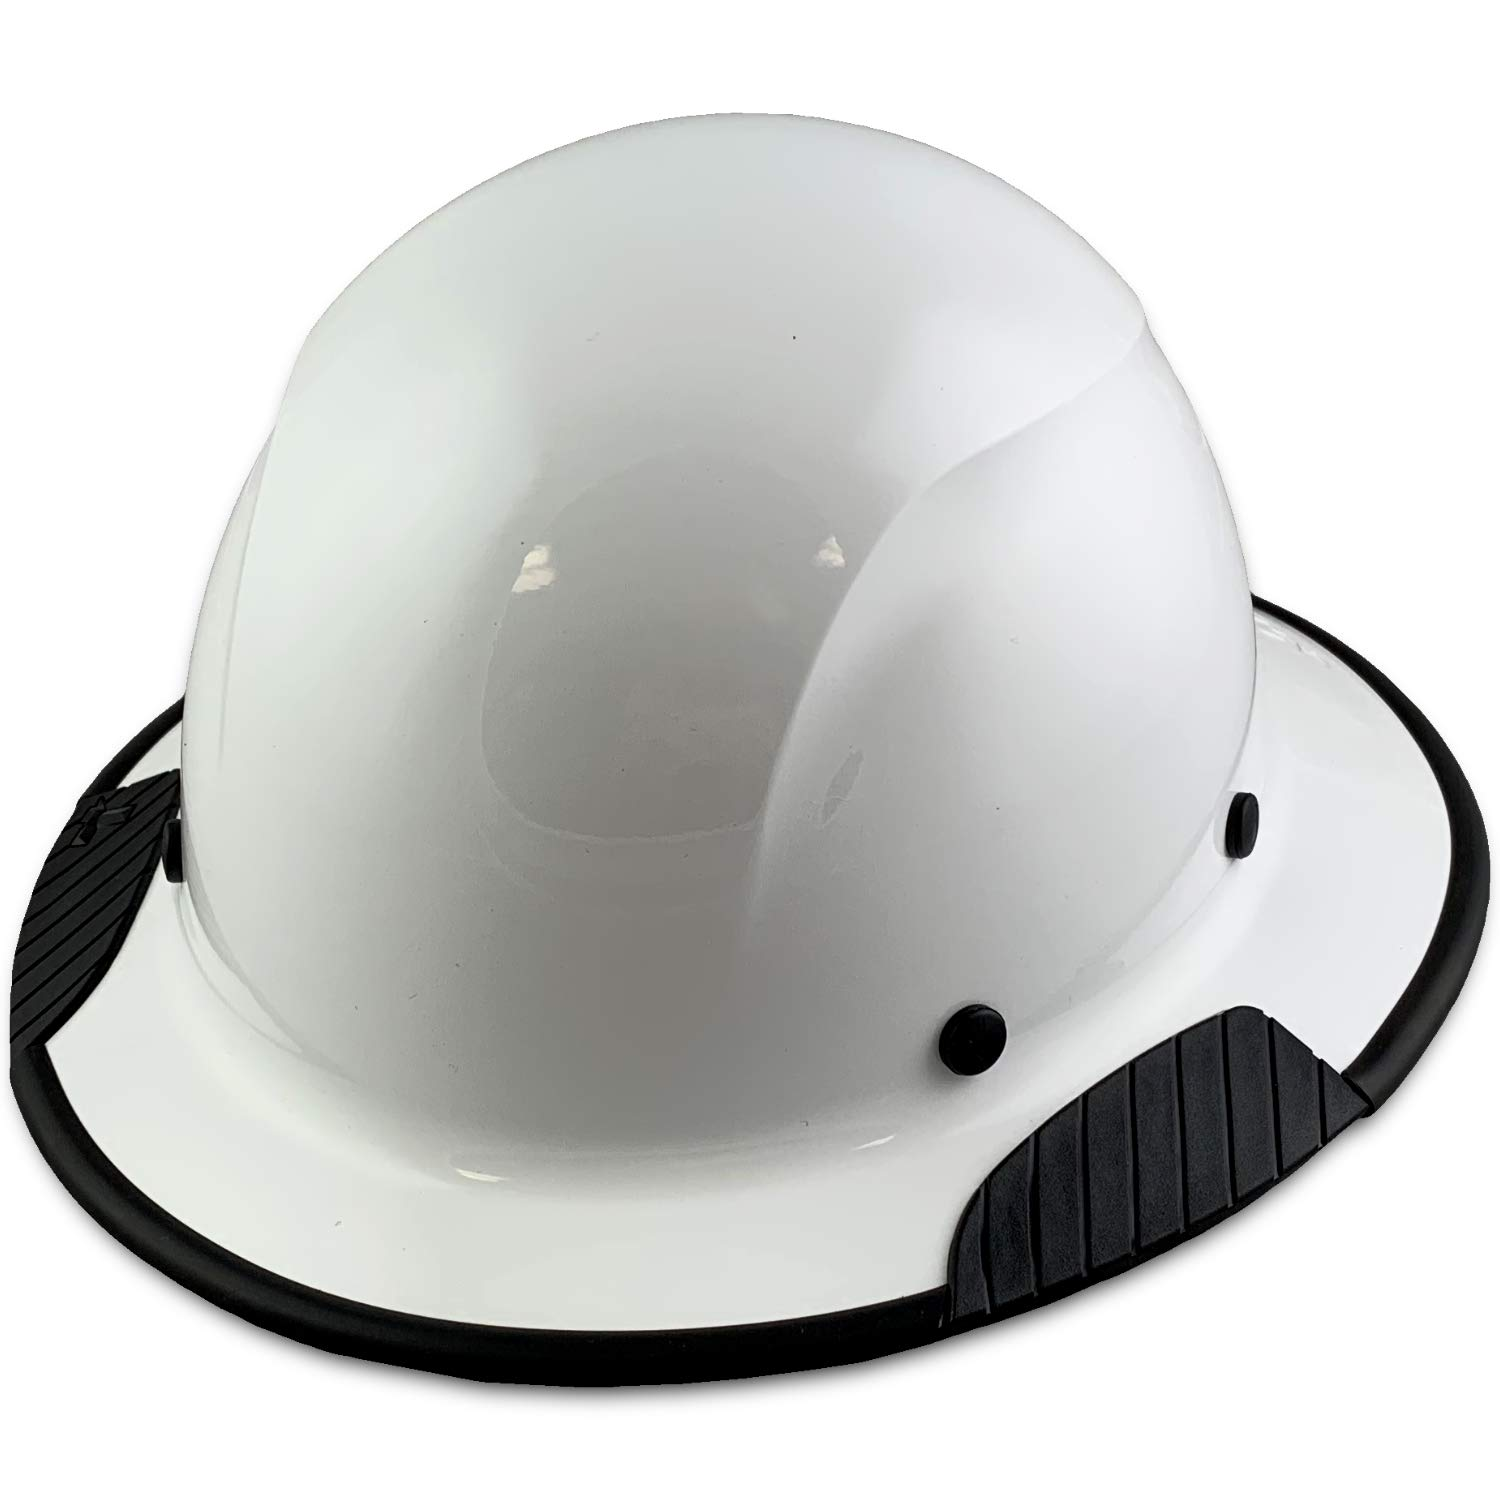 DAX Fiberglass Composite Hard Hat with Hard Hat Tote- Full Brim, White With Protective Edging by Texas America Safety Company